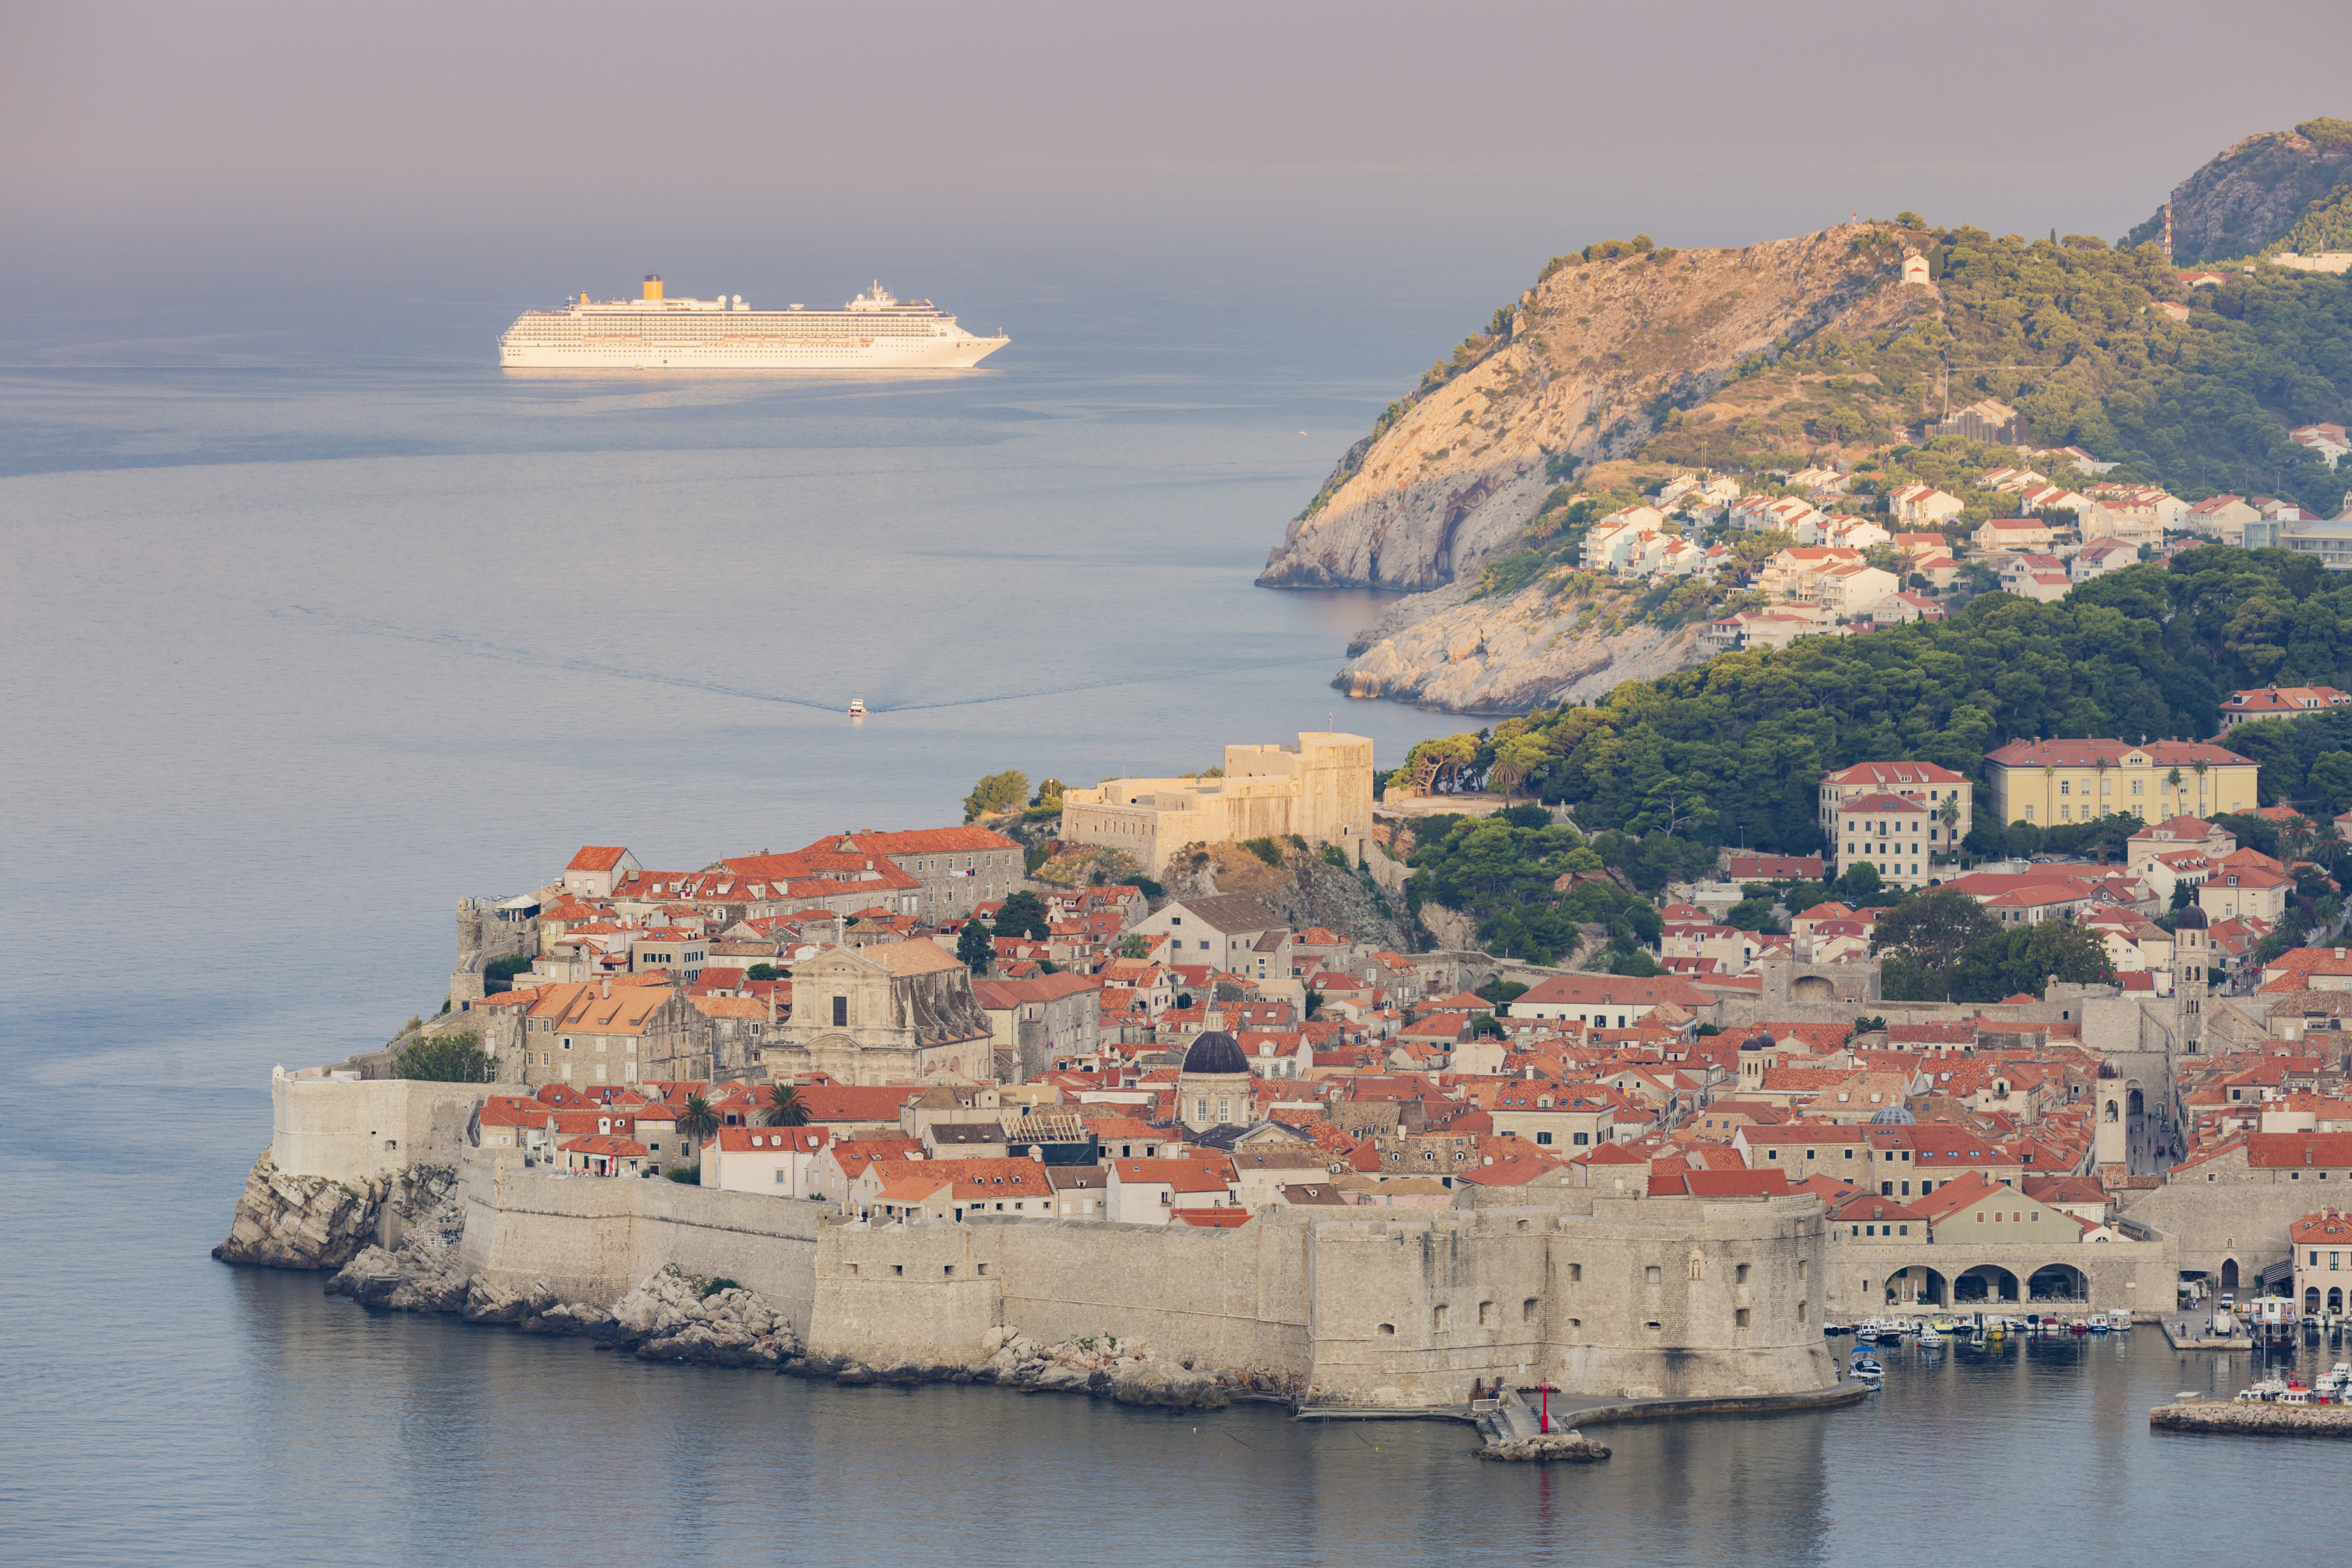 A cruis ship passes in the distance of Dubrovnik's Old Town